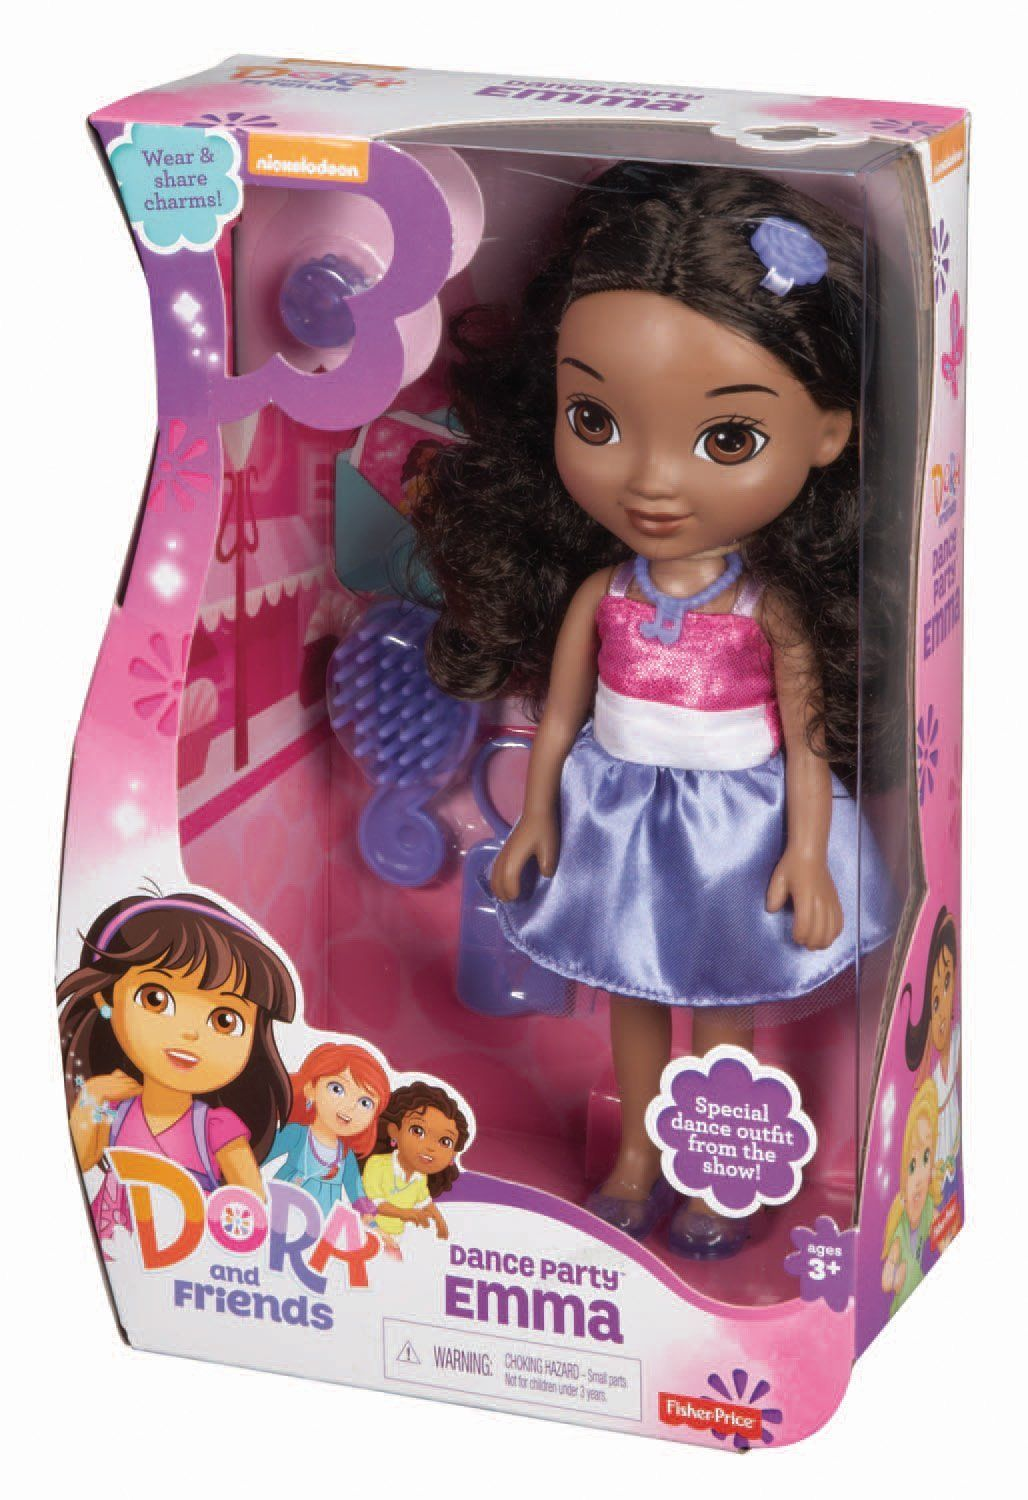 Dora Toys For Girls : Fisher price dora and friends dance party emma doll